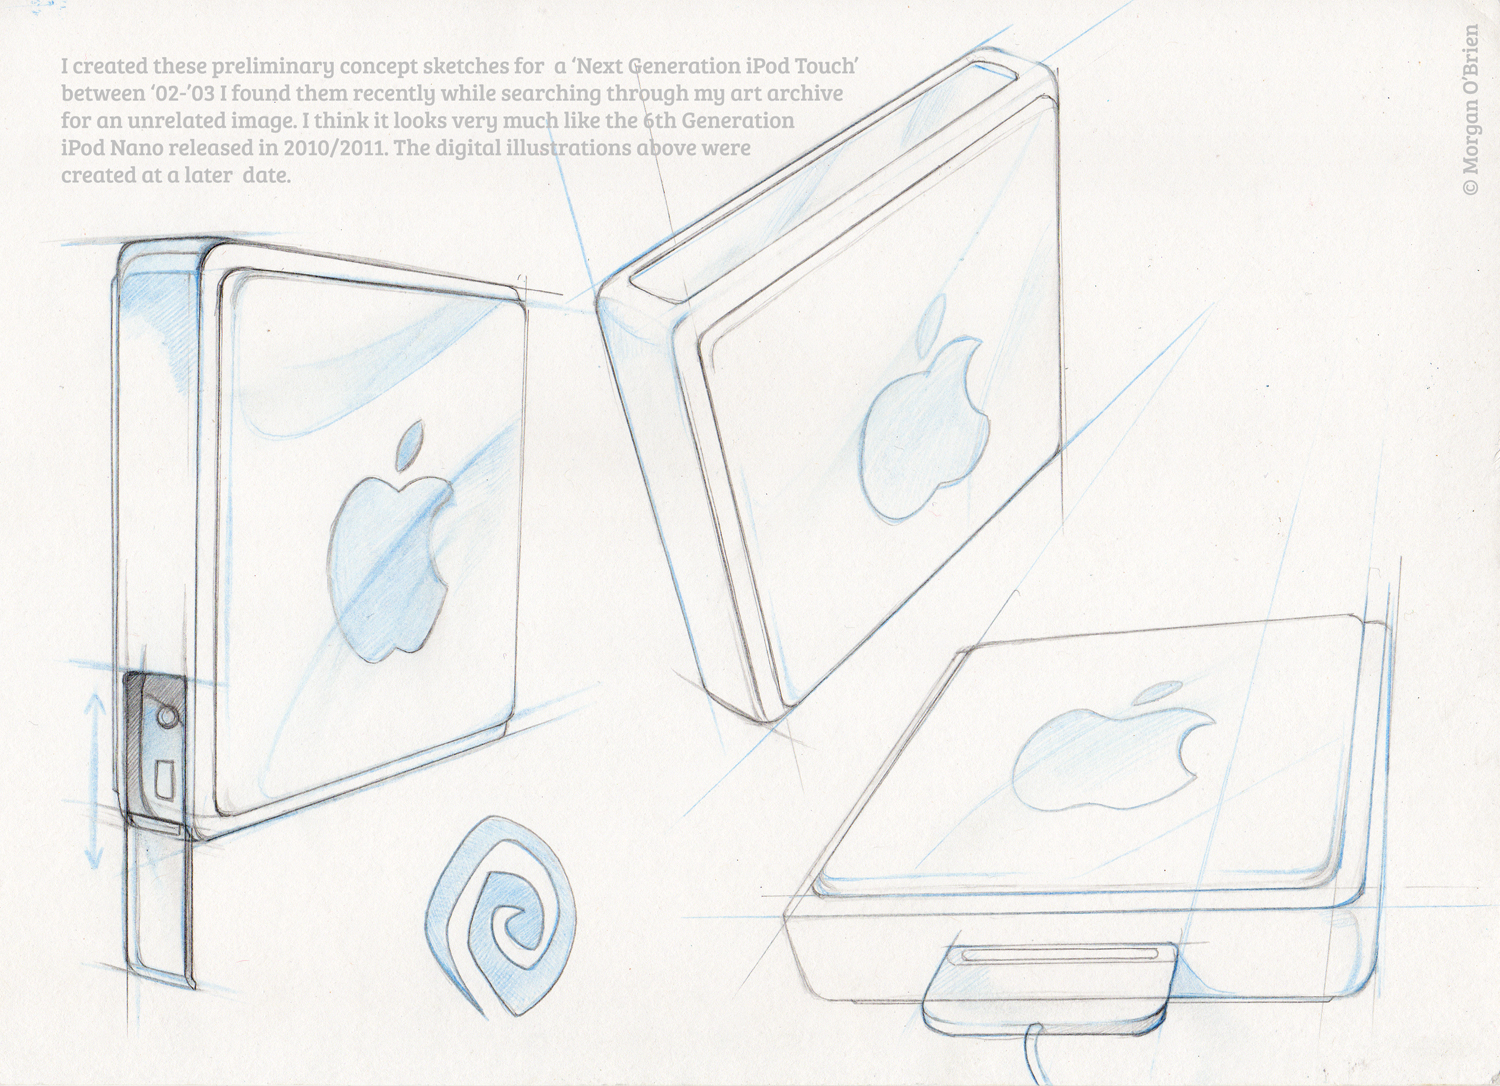 iPod Touch concept from 2002